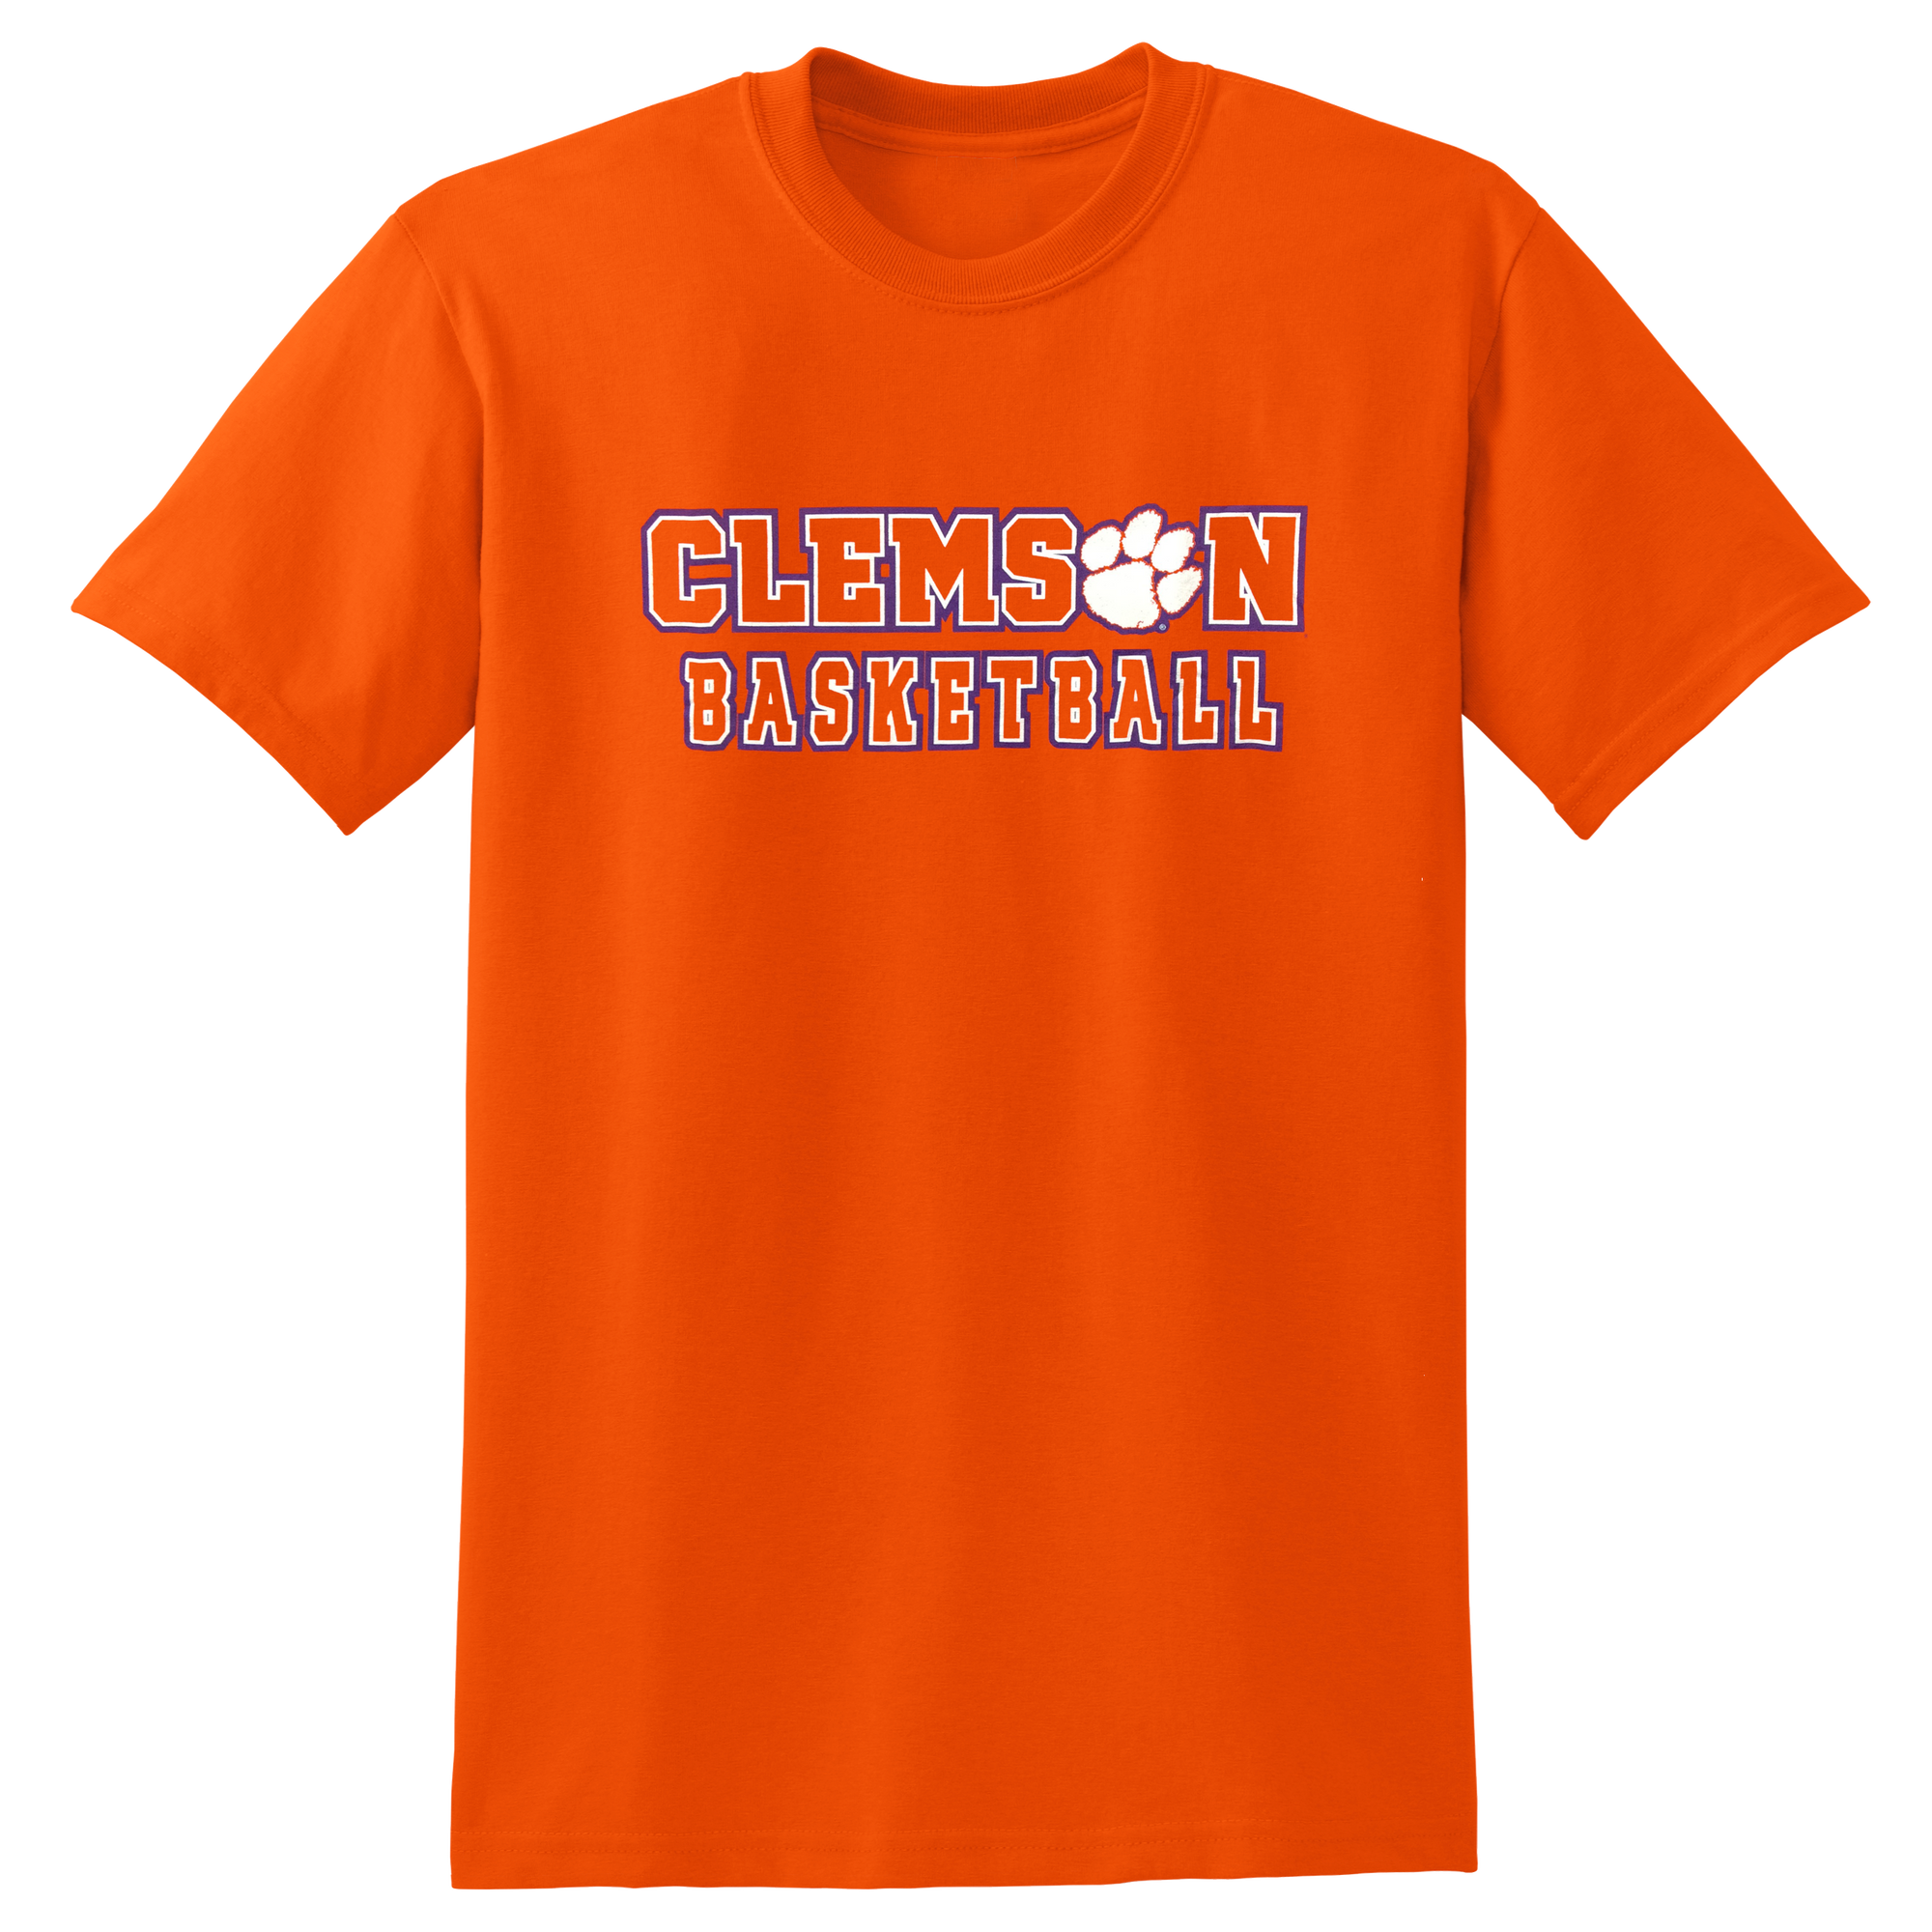 Cotton Sport Tee Basketball - Mr. Knickerbocker